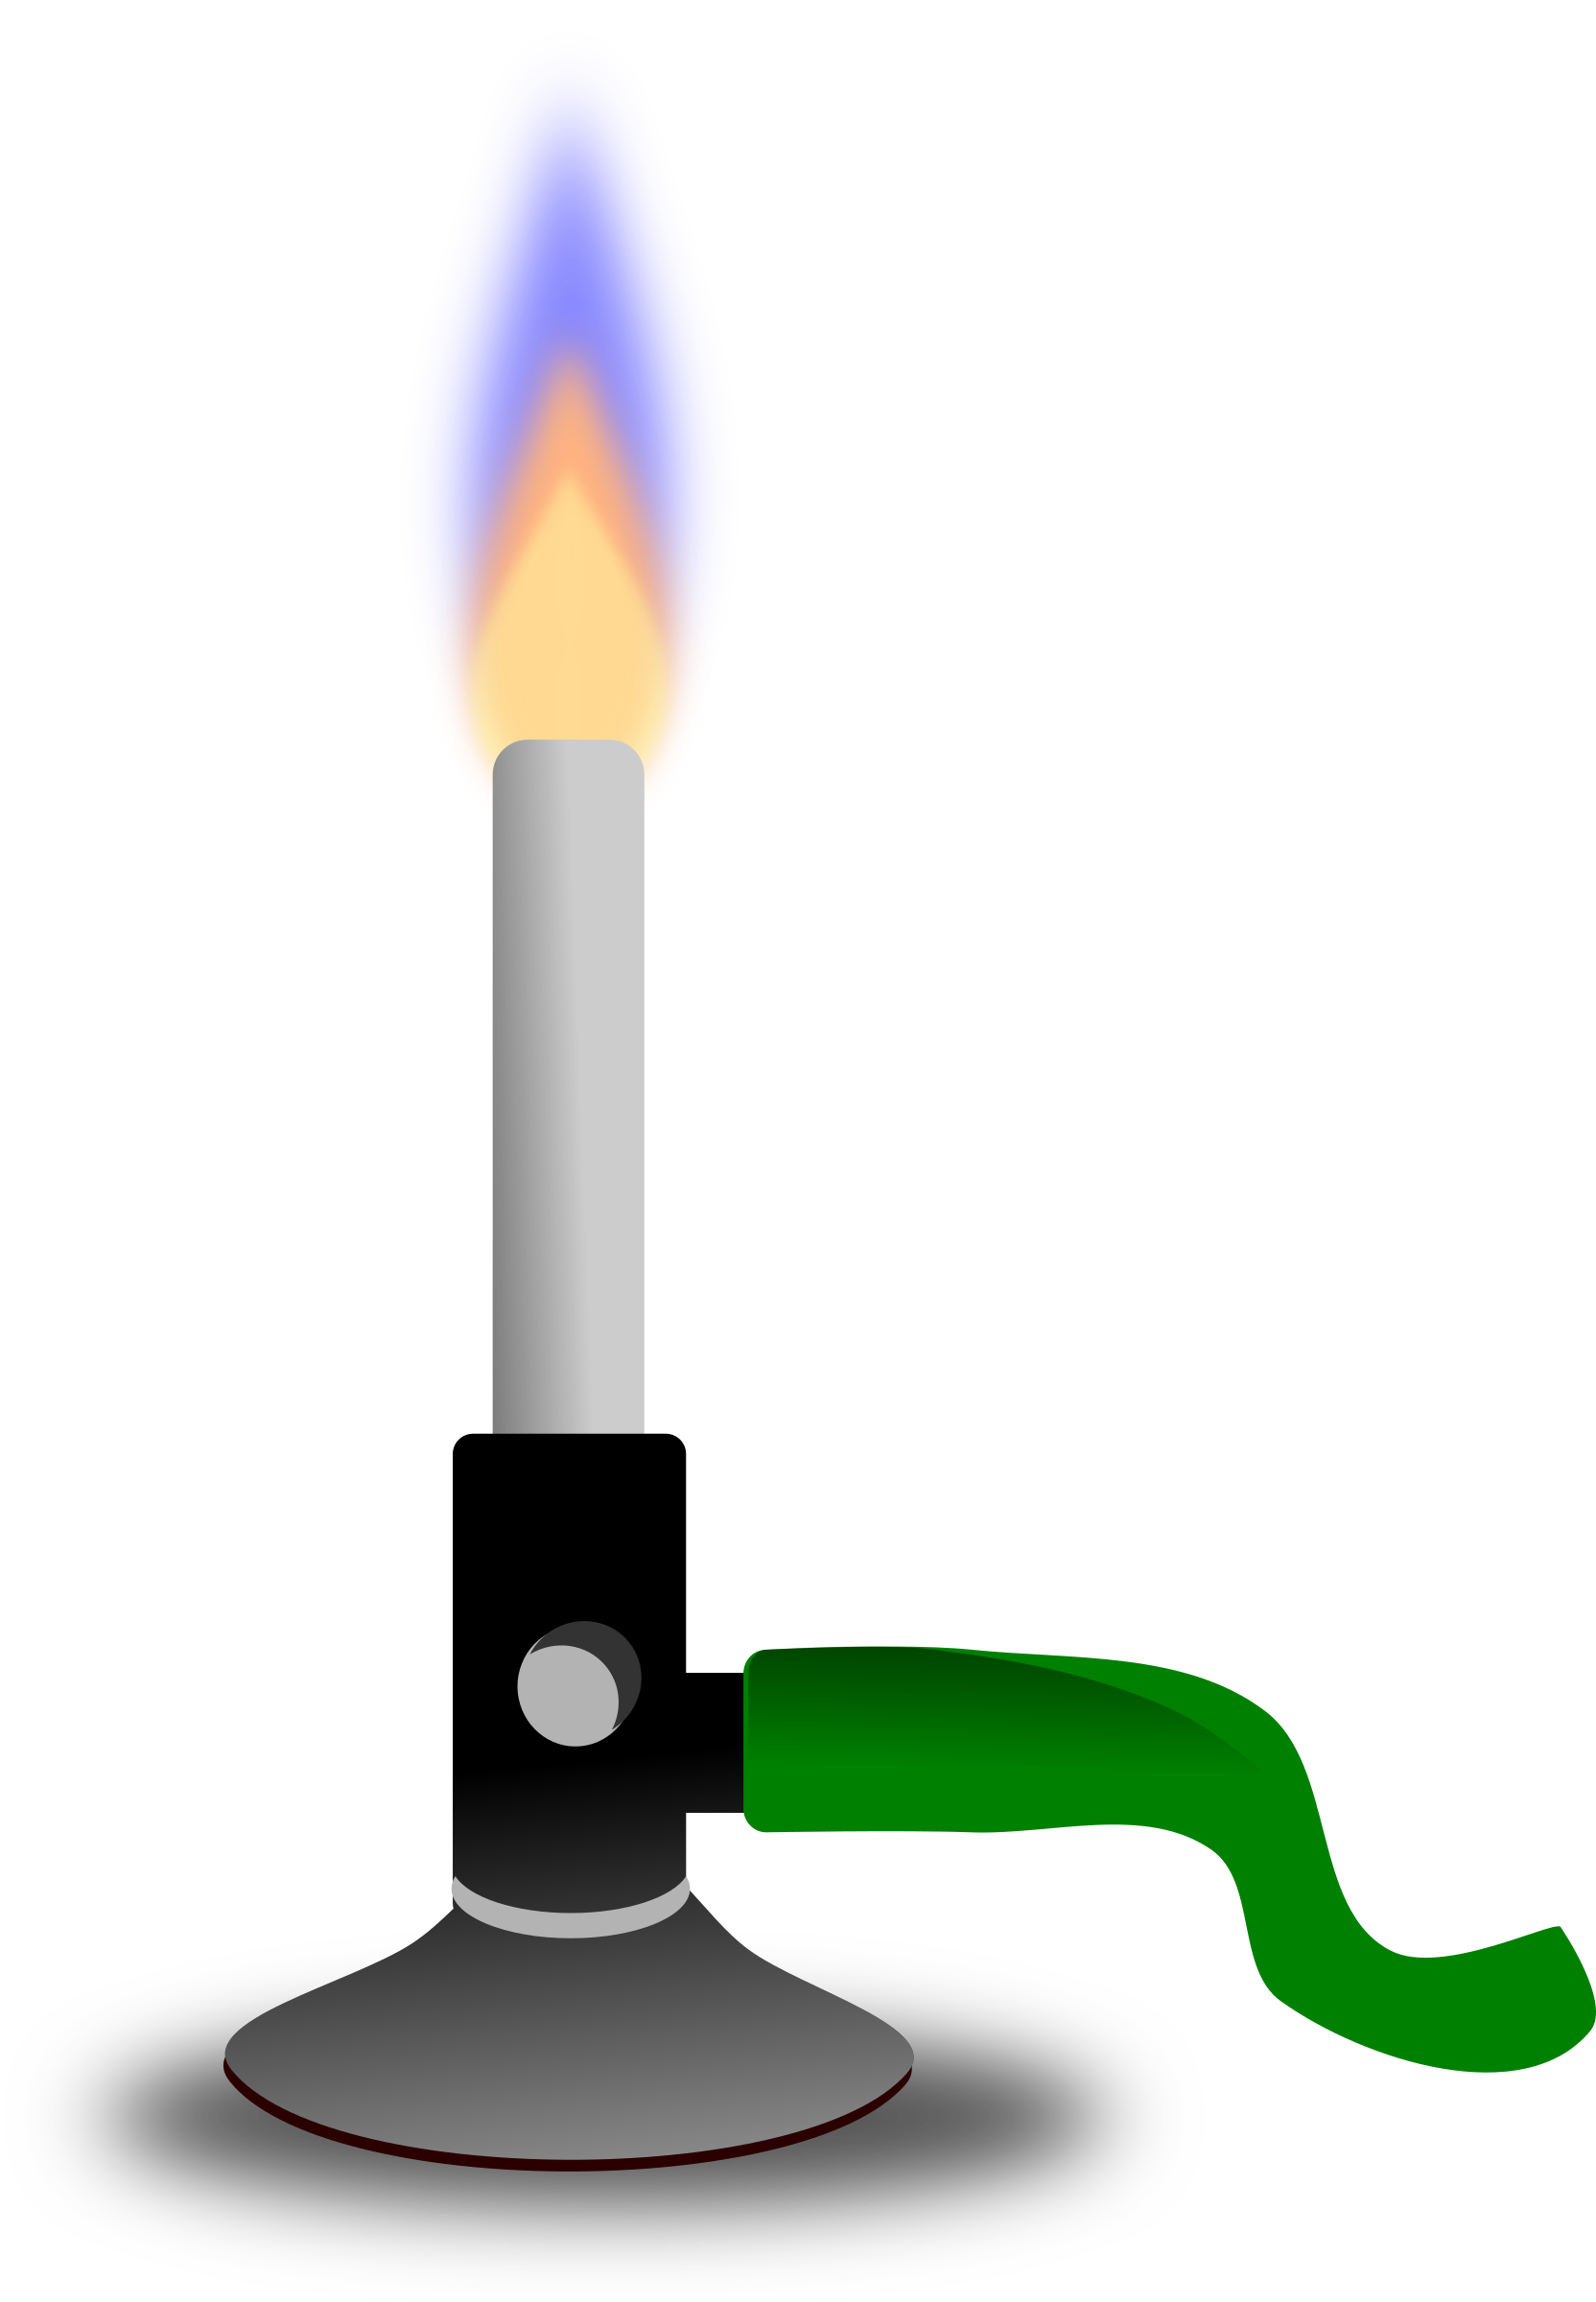 Bunsen burner by gsagri04